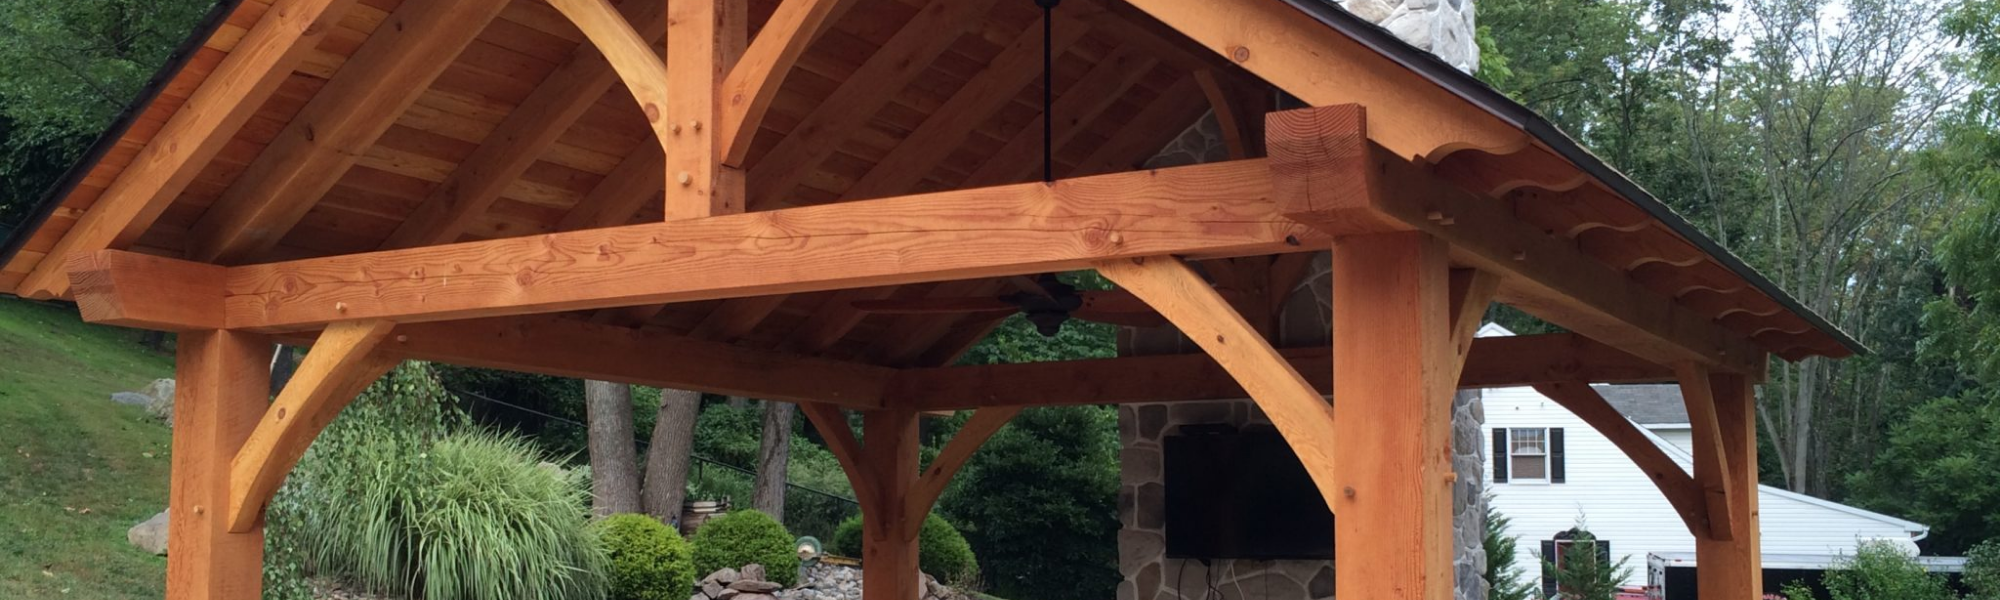 Outdoor Timber Frame Construction